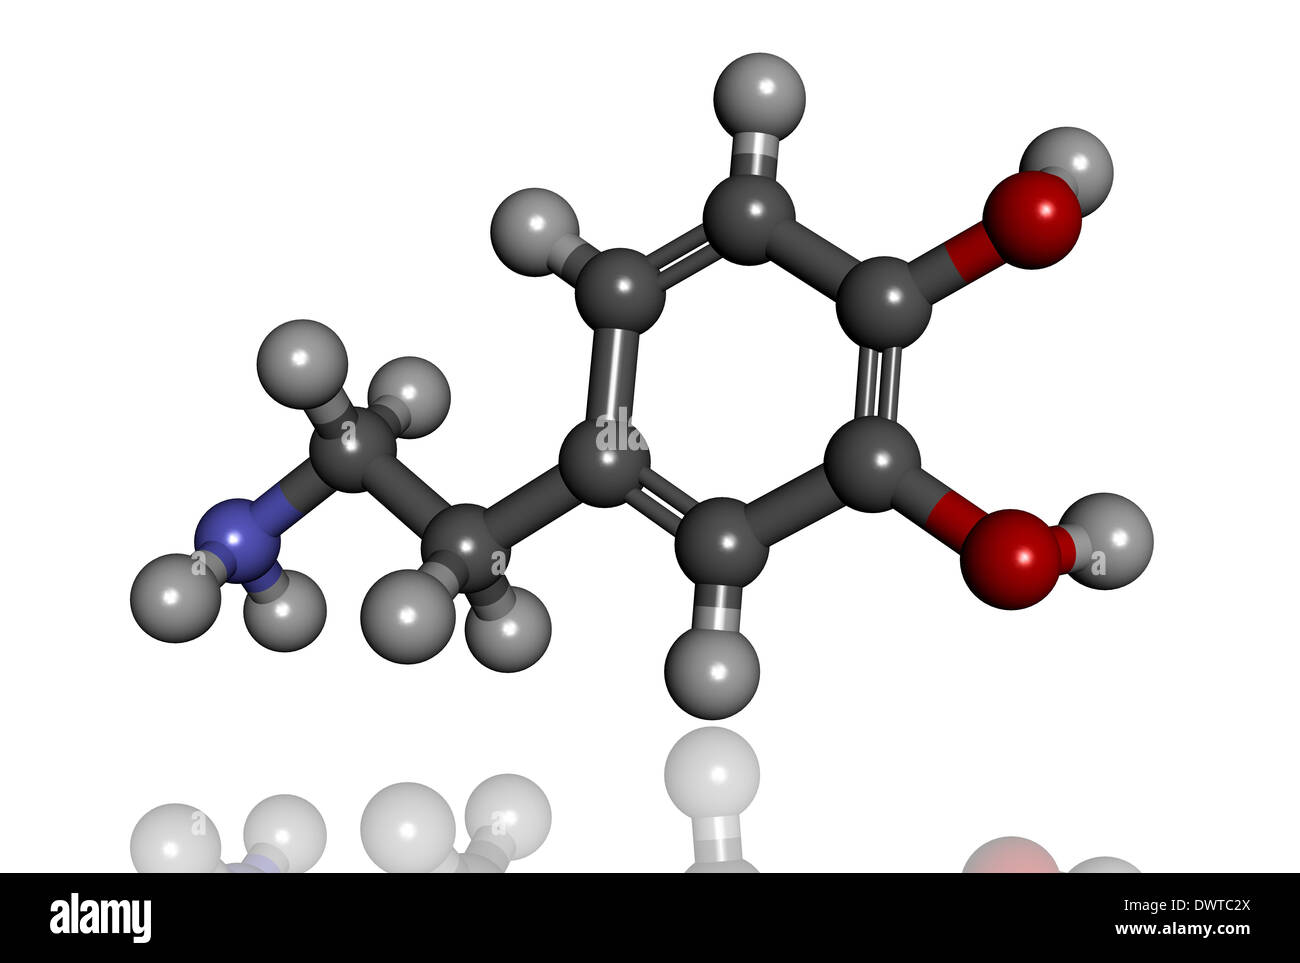 Dopamine Neurotransmitter Stock Photos & Dopamine ...